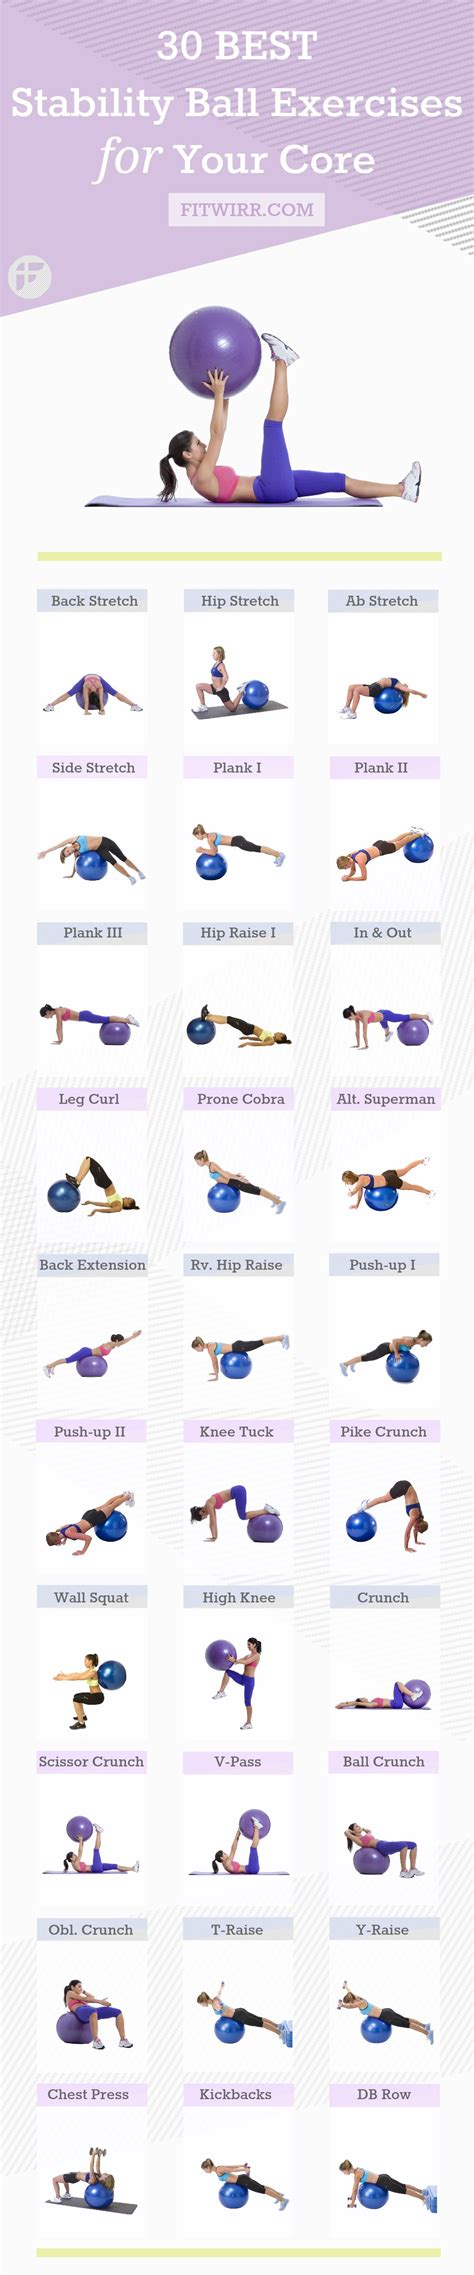 build  stronger body   stability ball louisville athletic club